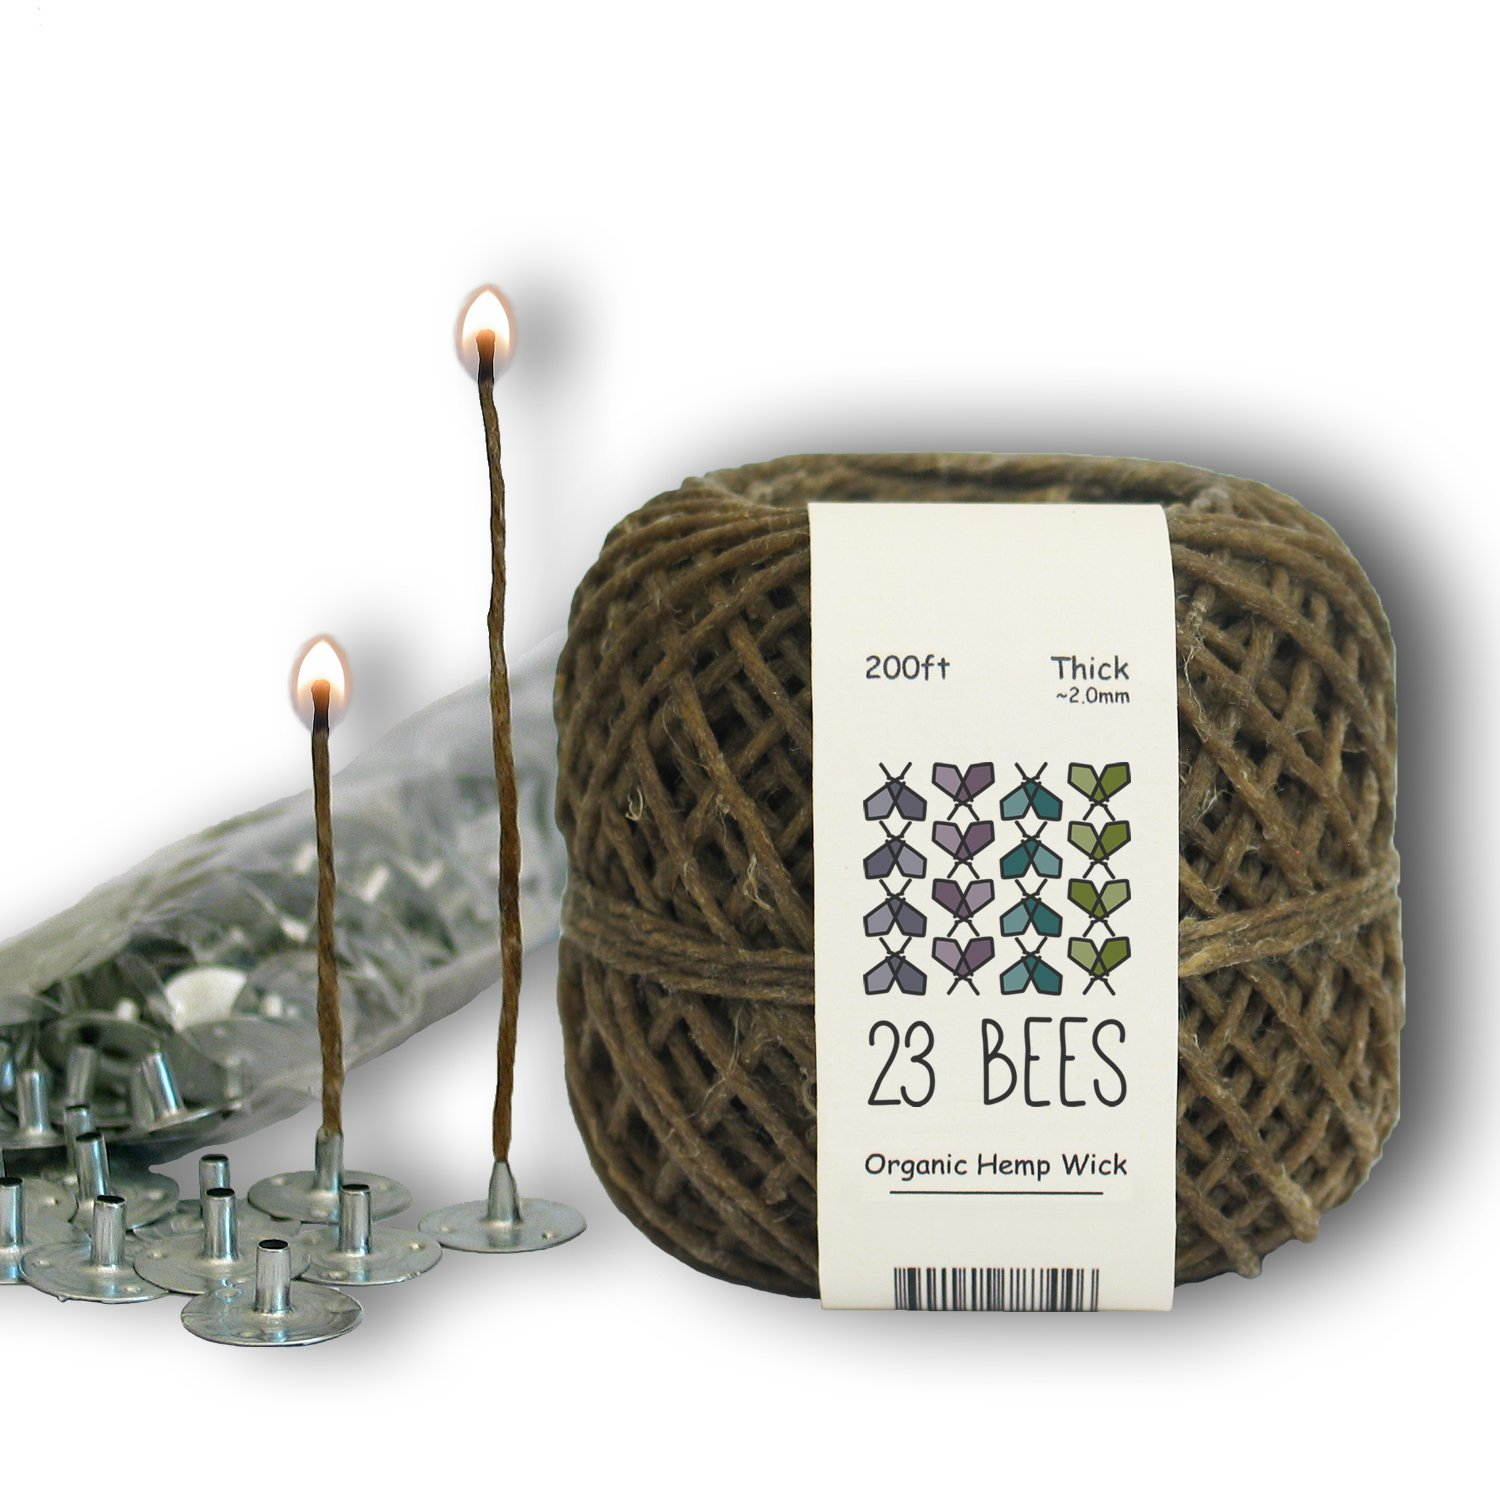 23 Bees 100% Organic Hemp Candle Wick + Wick Sustainer Tabs, 200ft(Thick) x 200pcs TB200T200TAB